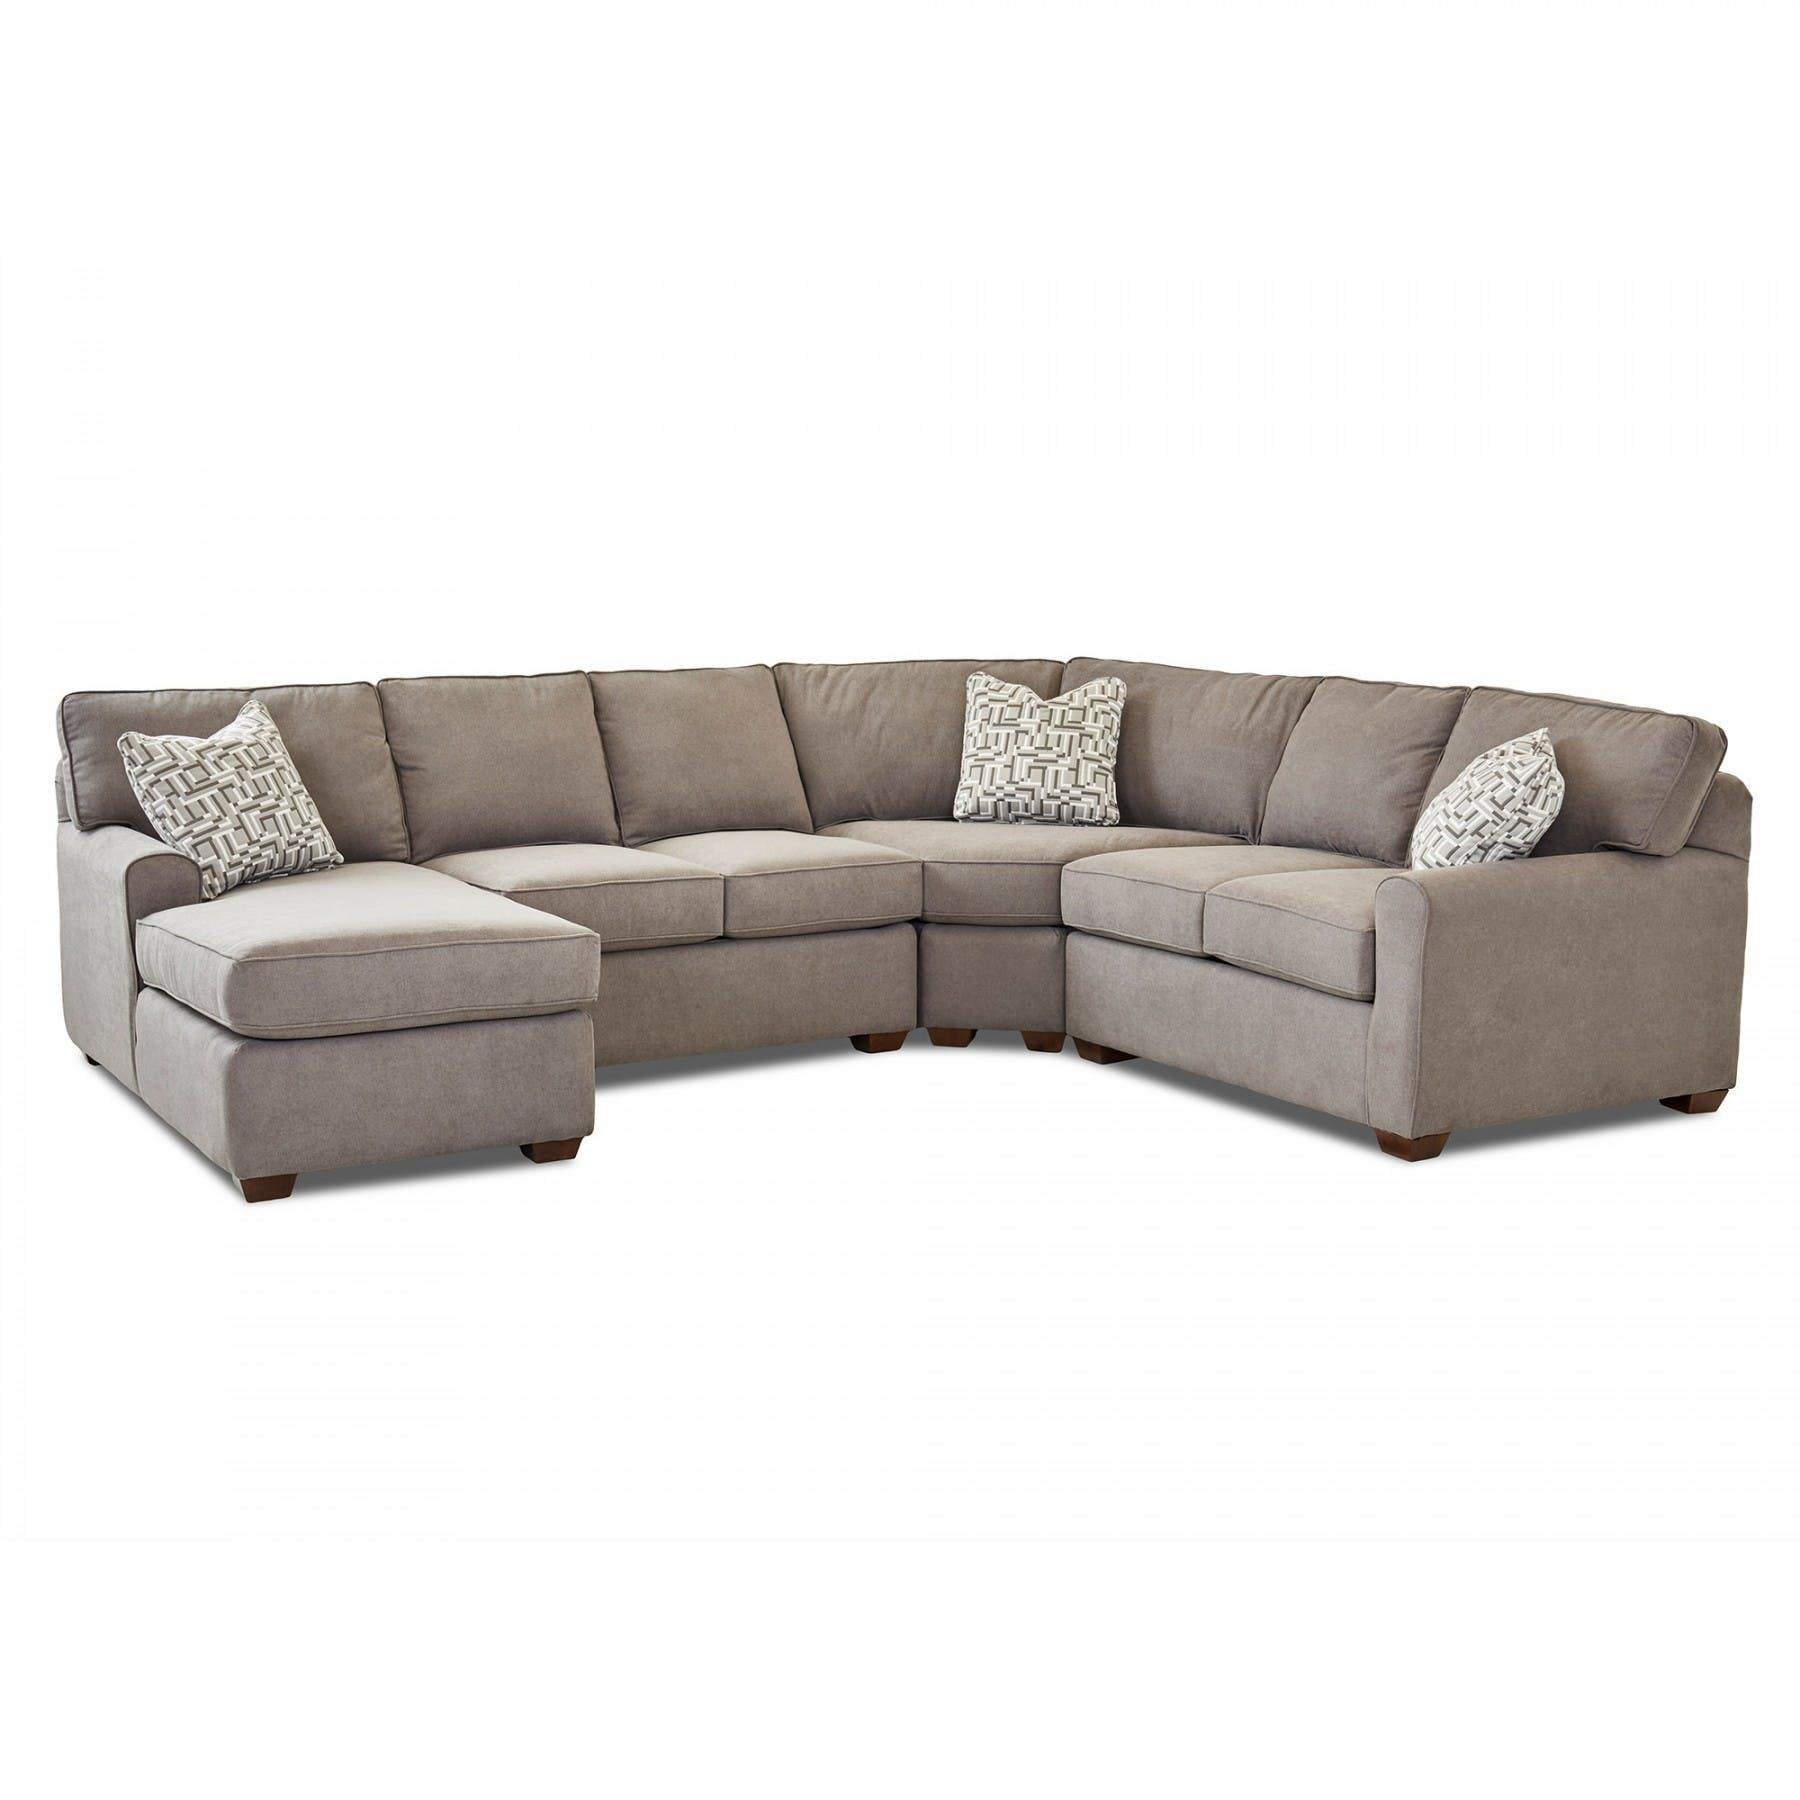 Hybrid Iii 4 Piece Sectional Sectionals Living Room Bernie Phyl S Furniture By Klaussner Industries